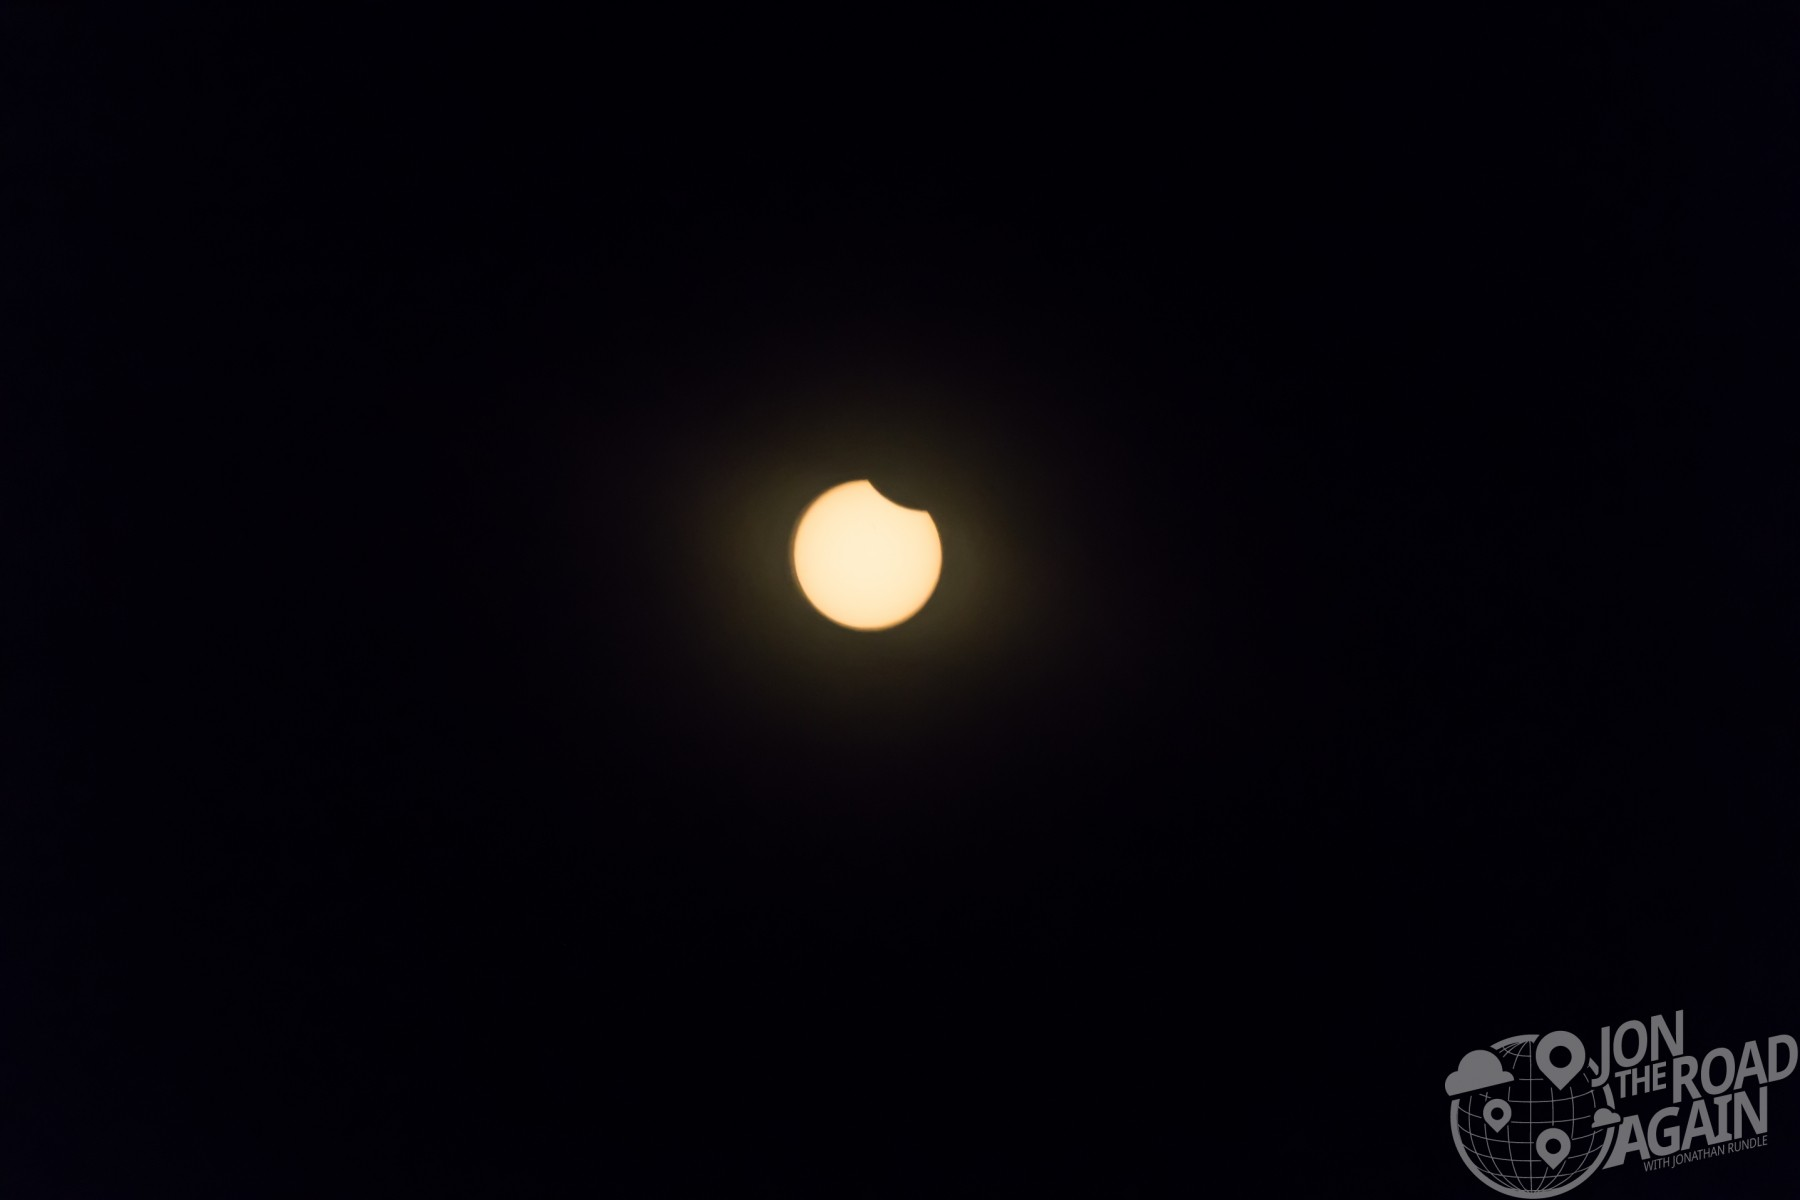 First part of the eclipse